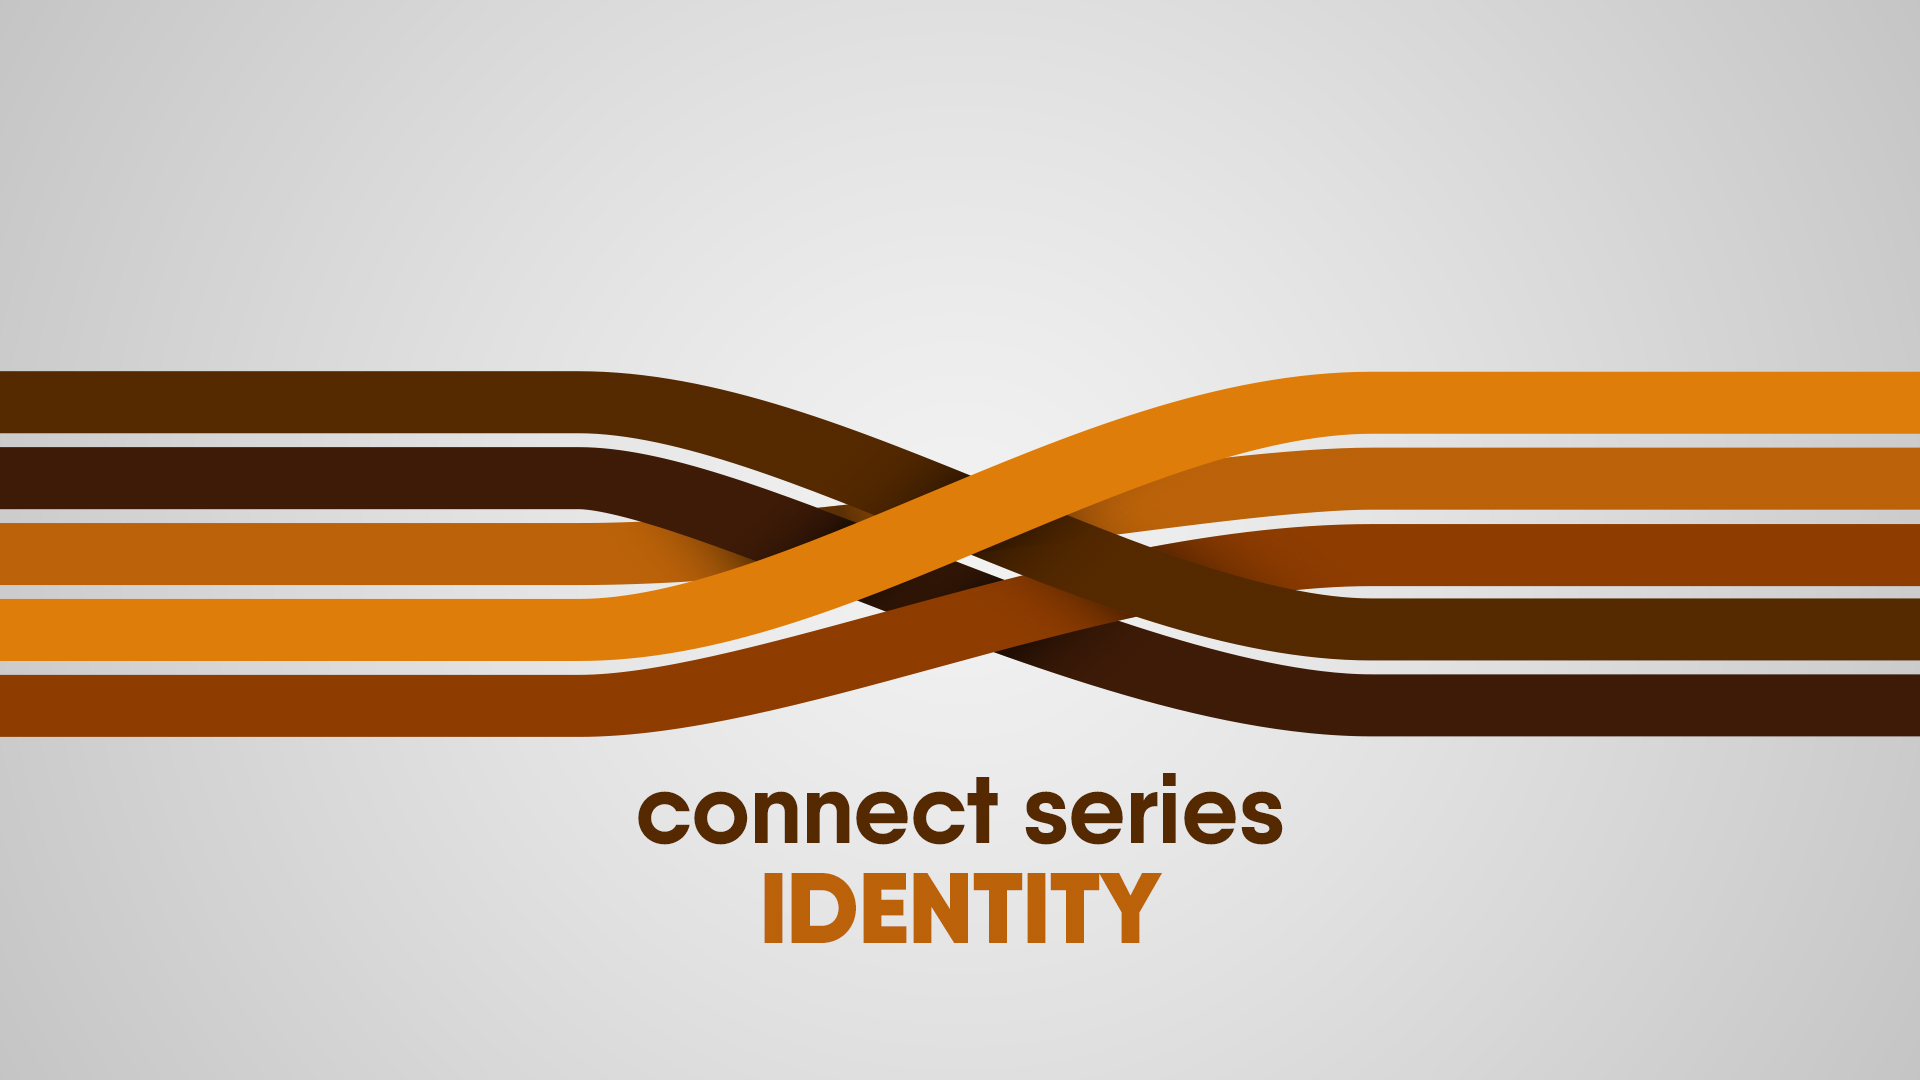 Connect Series - Identity